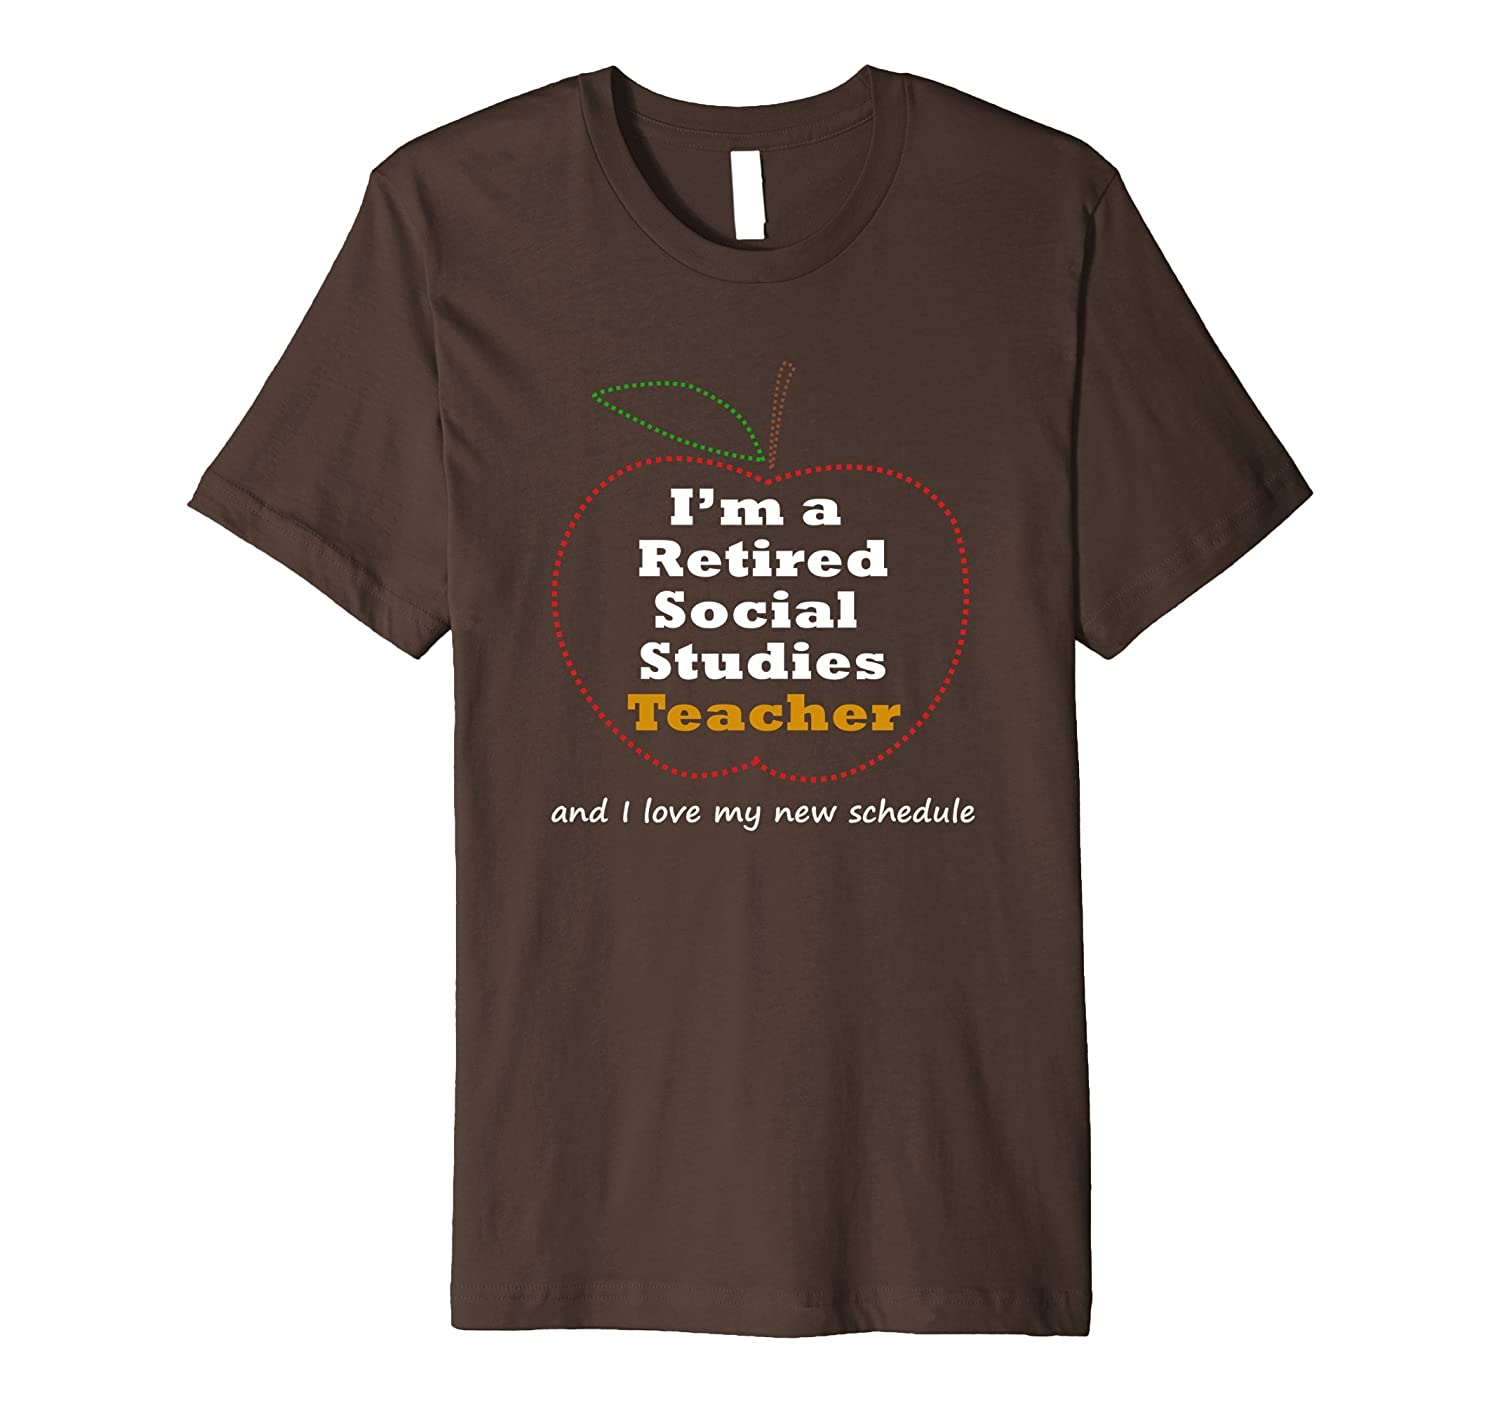 Funny Social Studies Teacher Retirement T Shirt Gift Novelty-Bawle